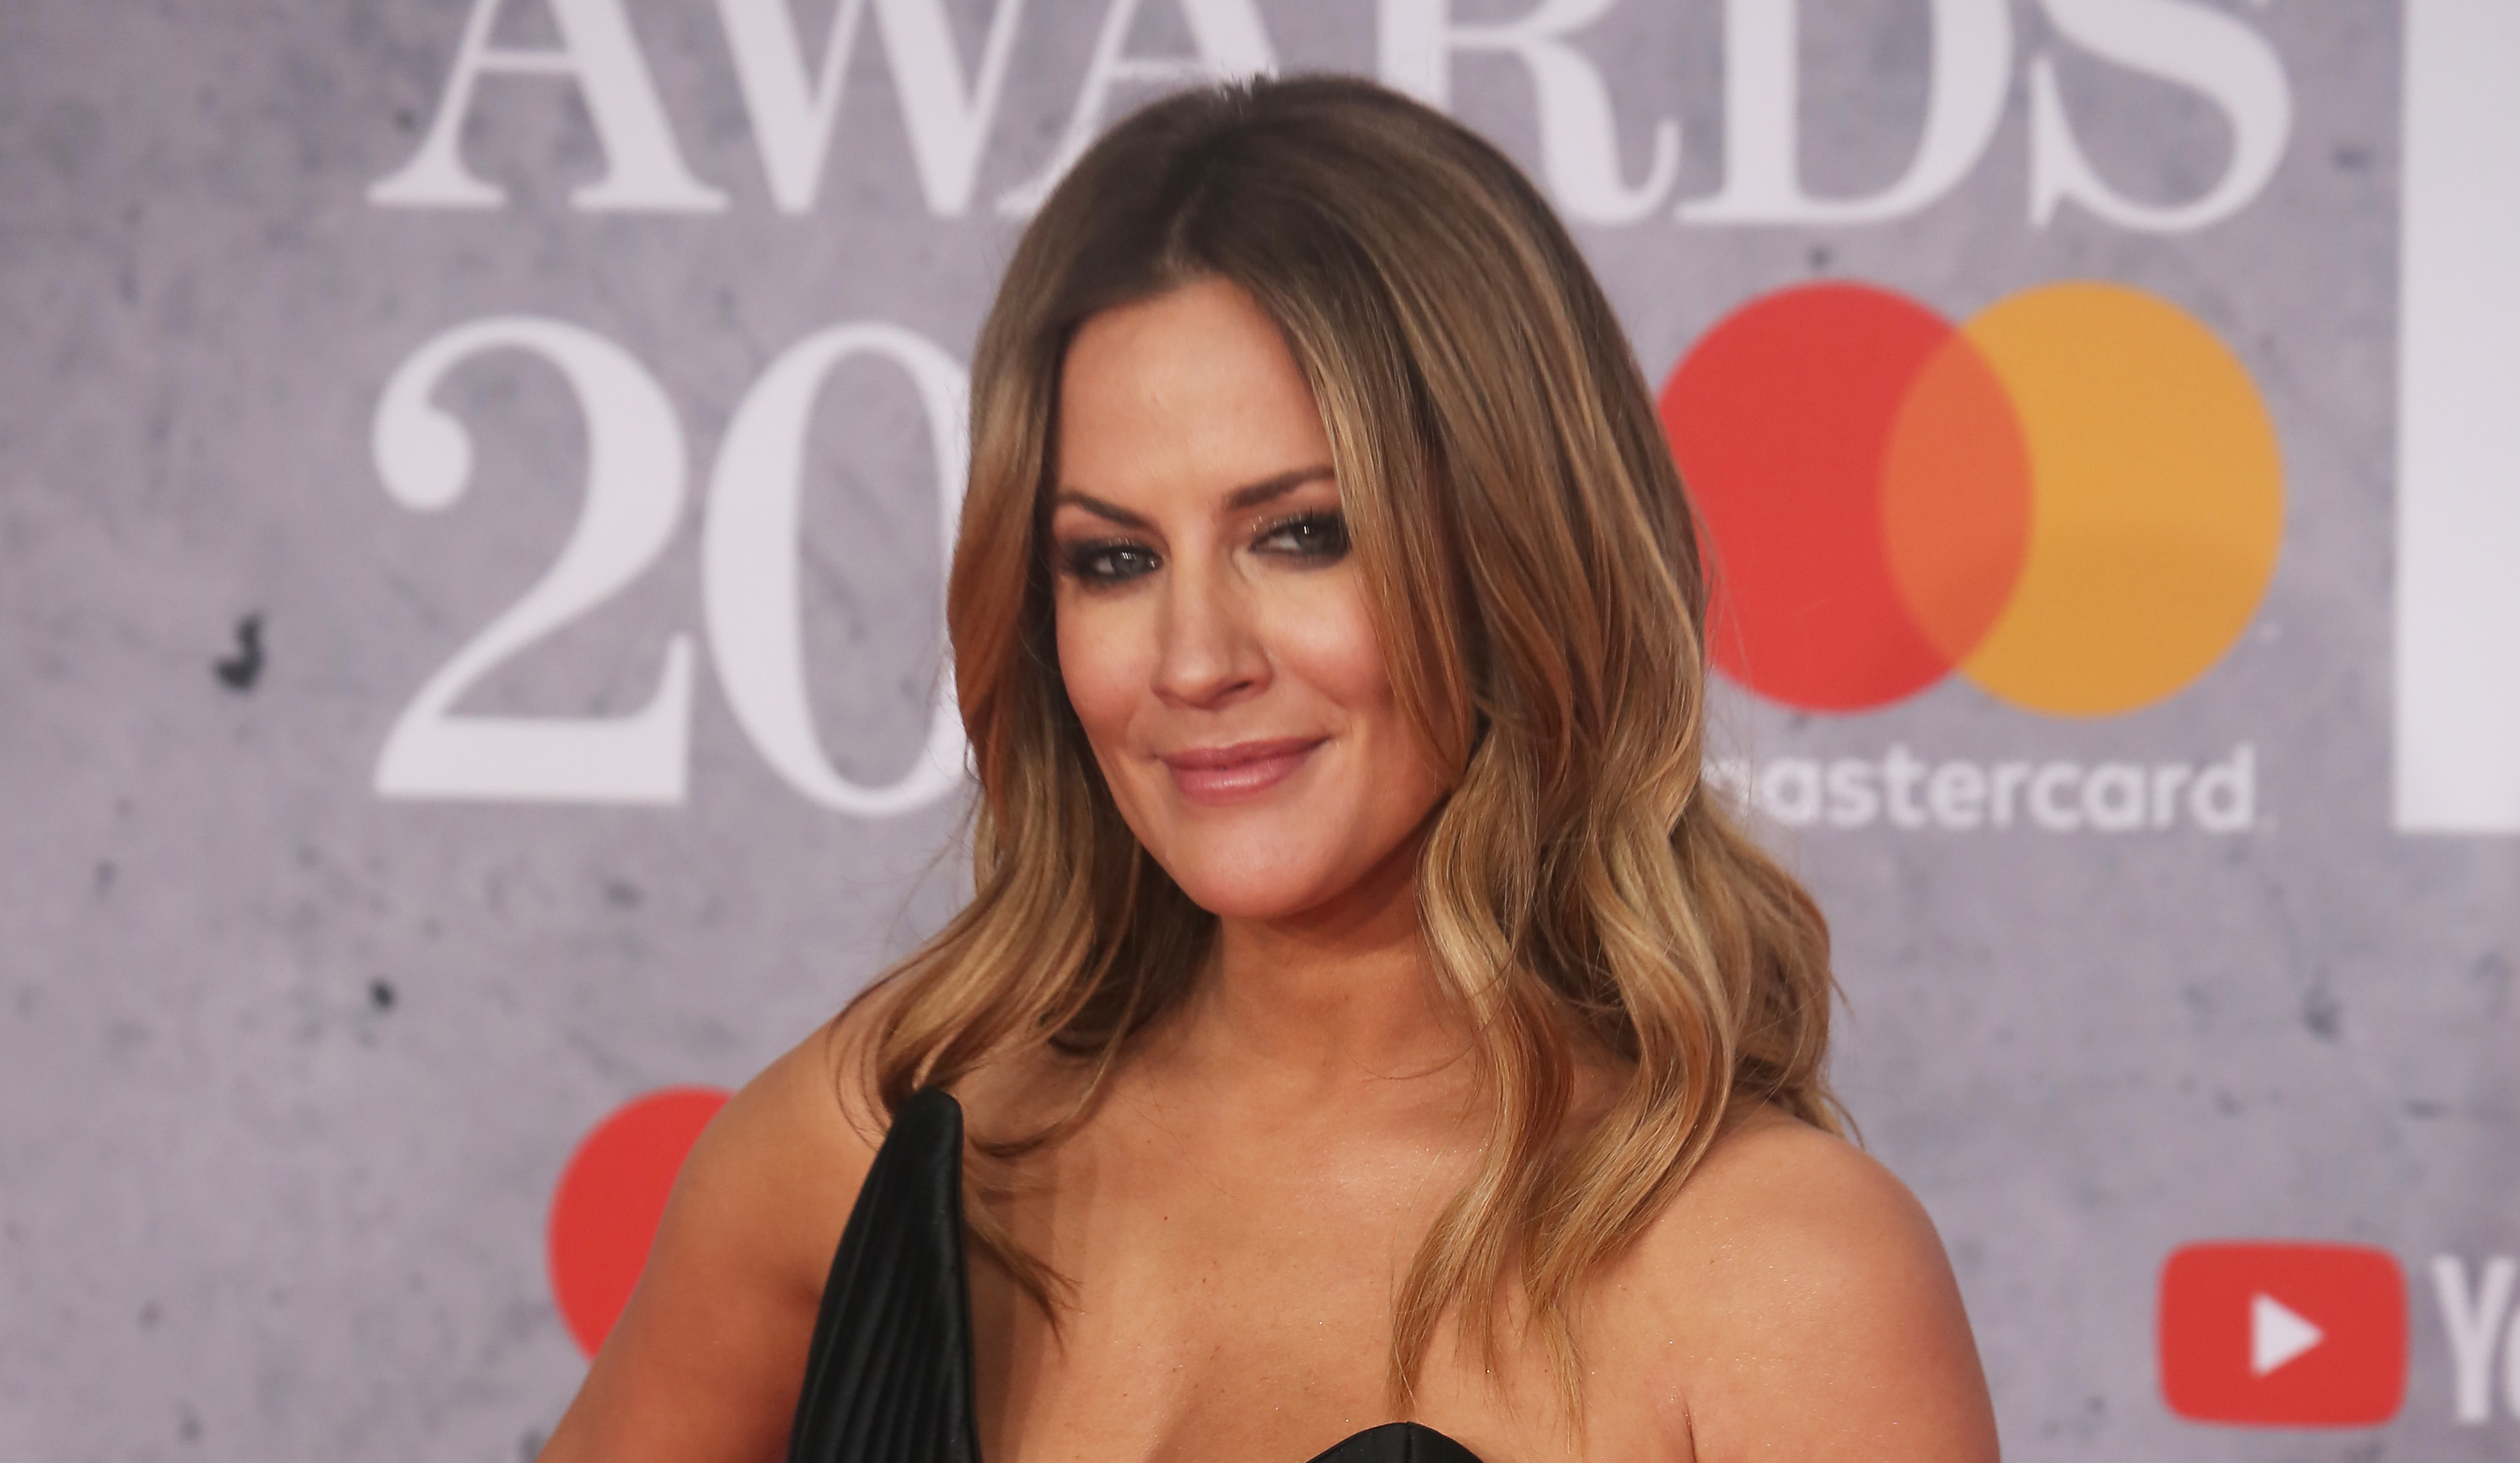 Caroline Flack's new beau Lewis Burton is 'on the rebound' and 'playing' her, claims ex